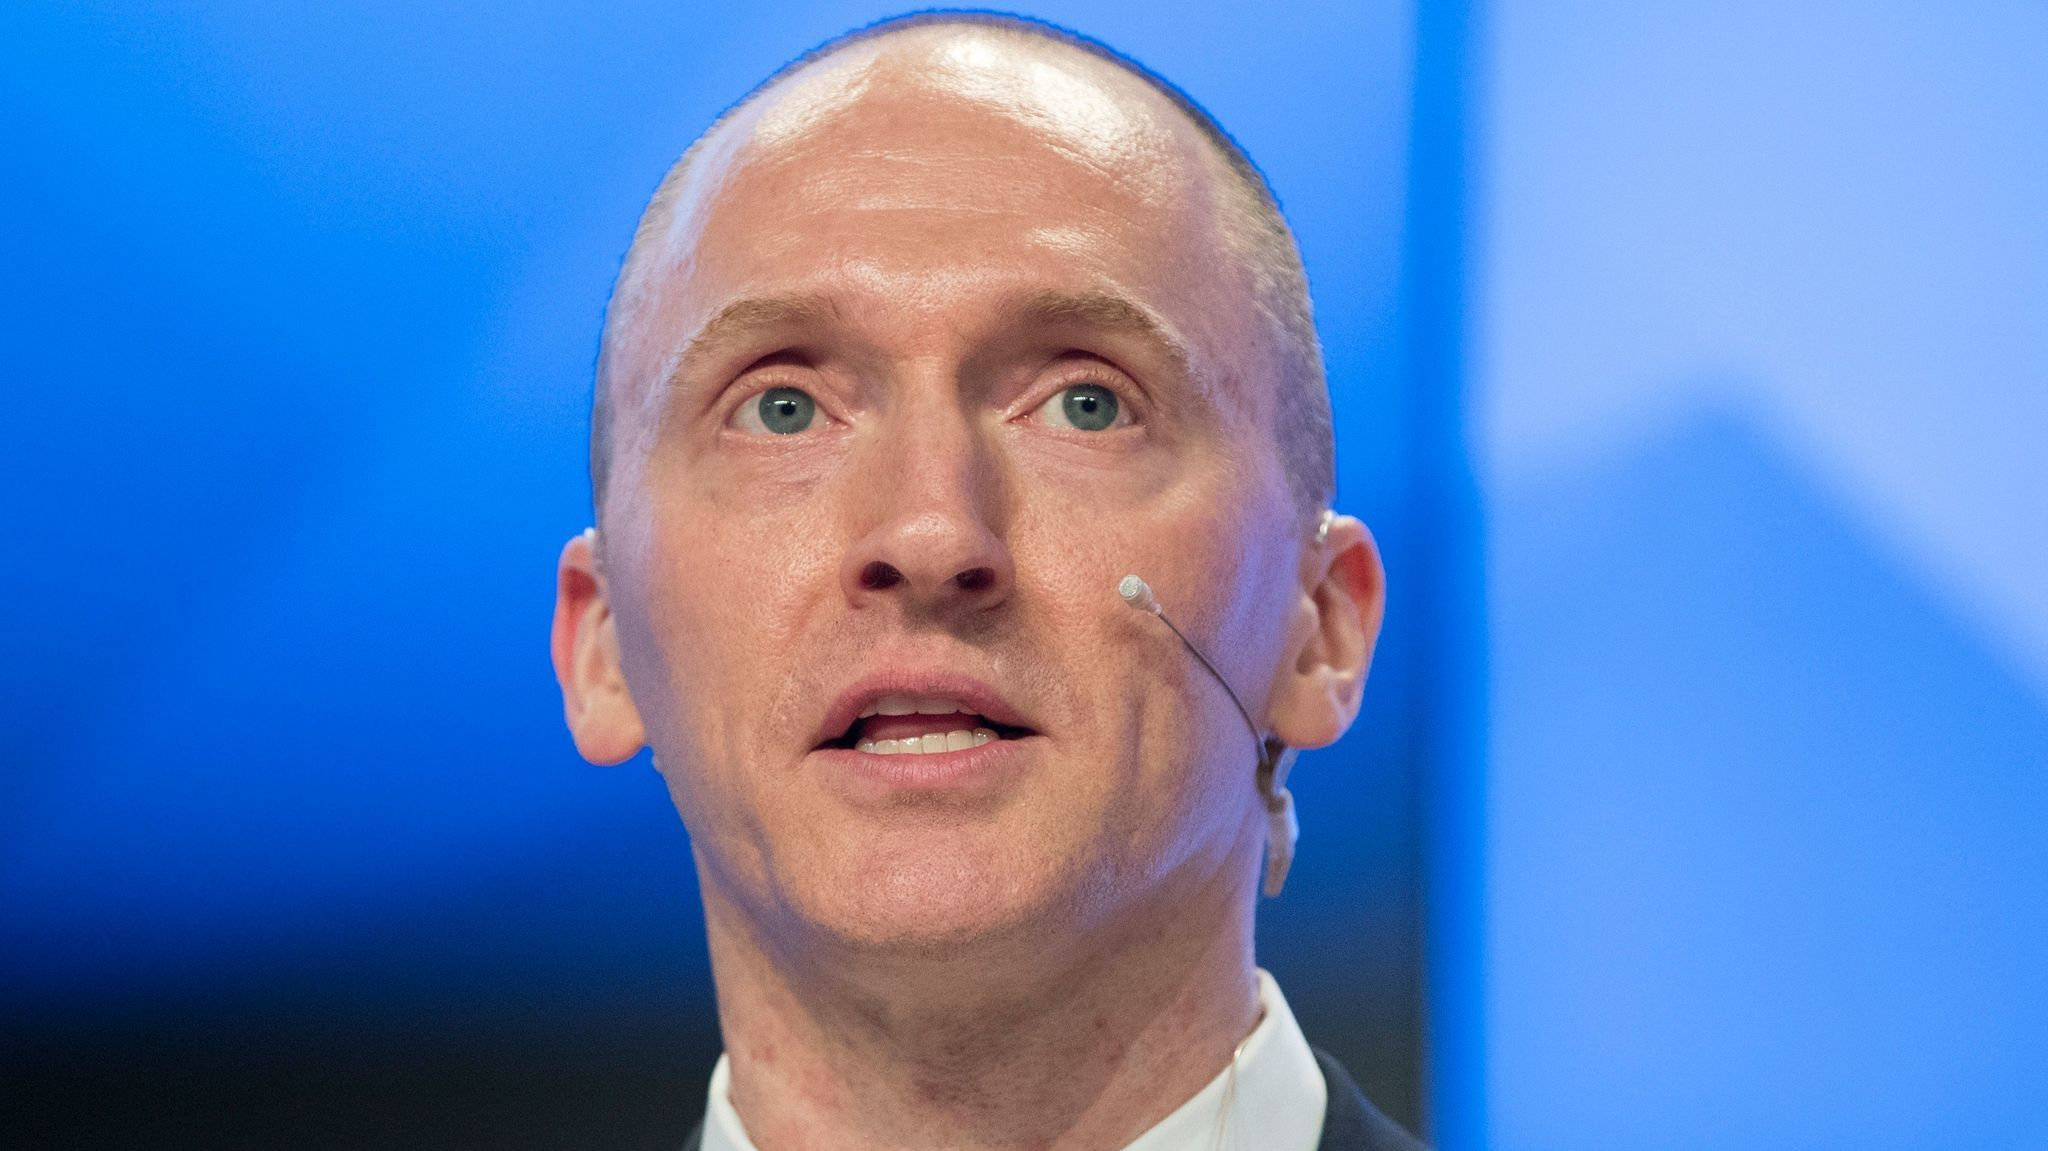 Carter Page speaks at a news conference in Moscow in December.